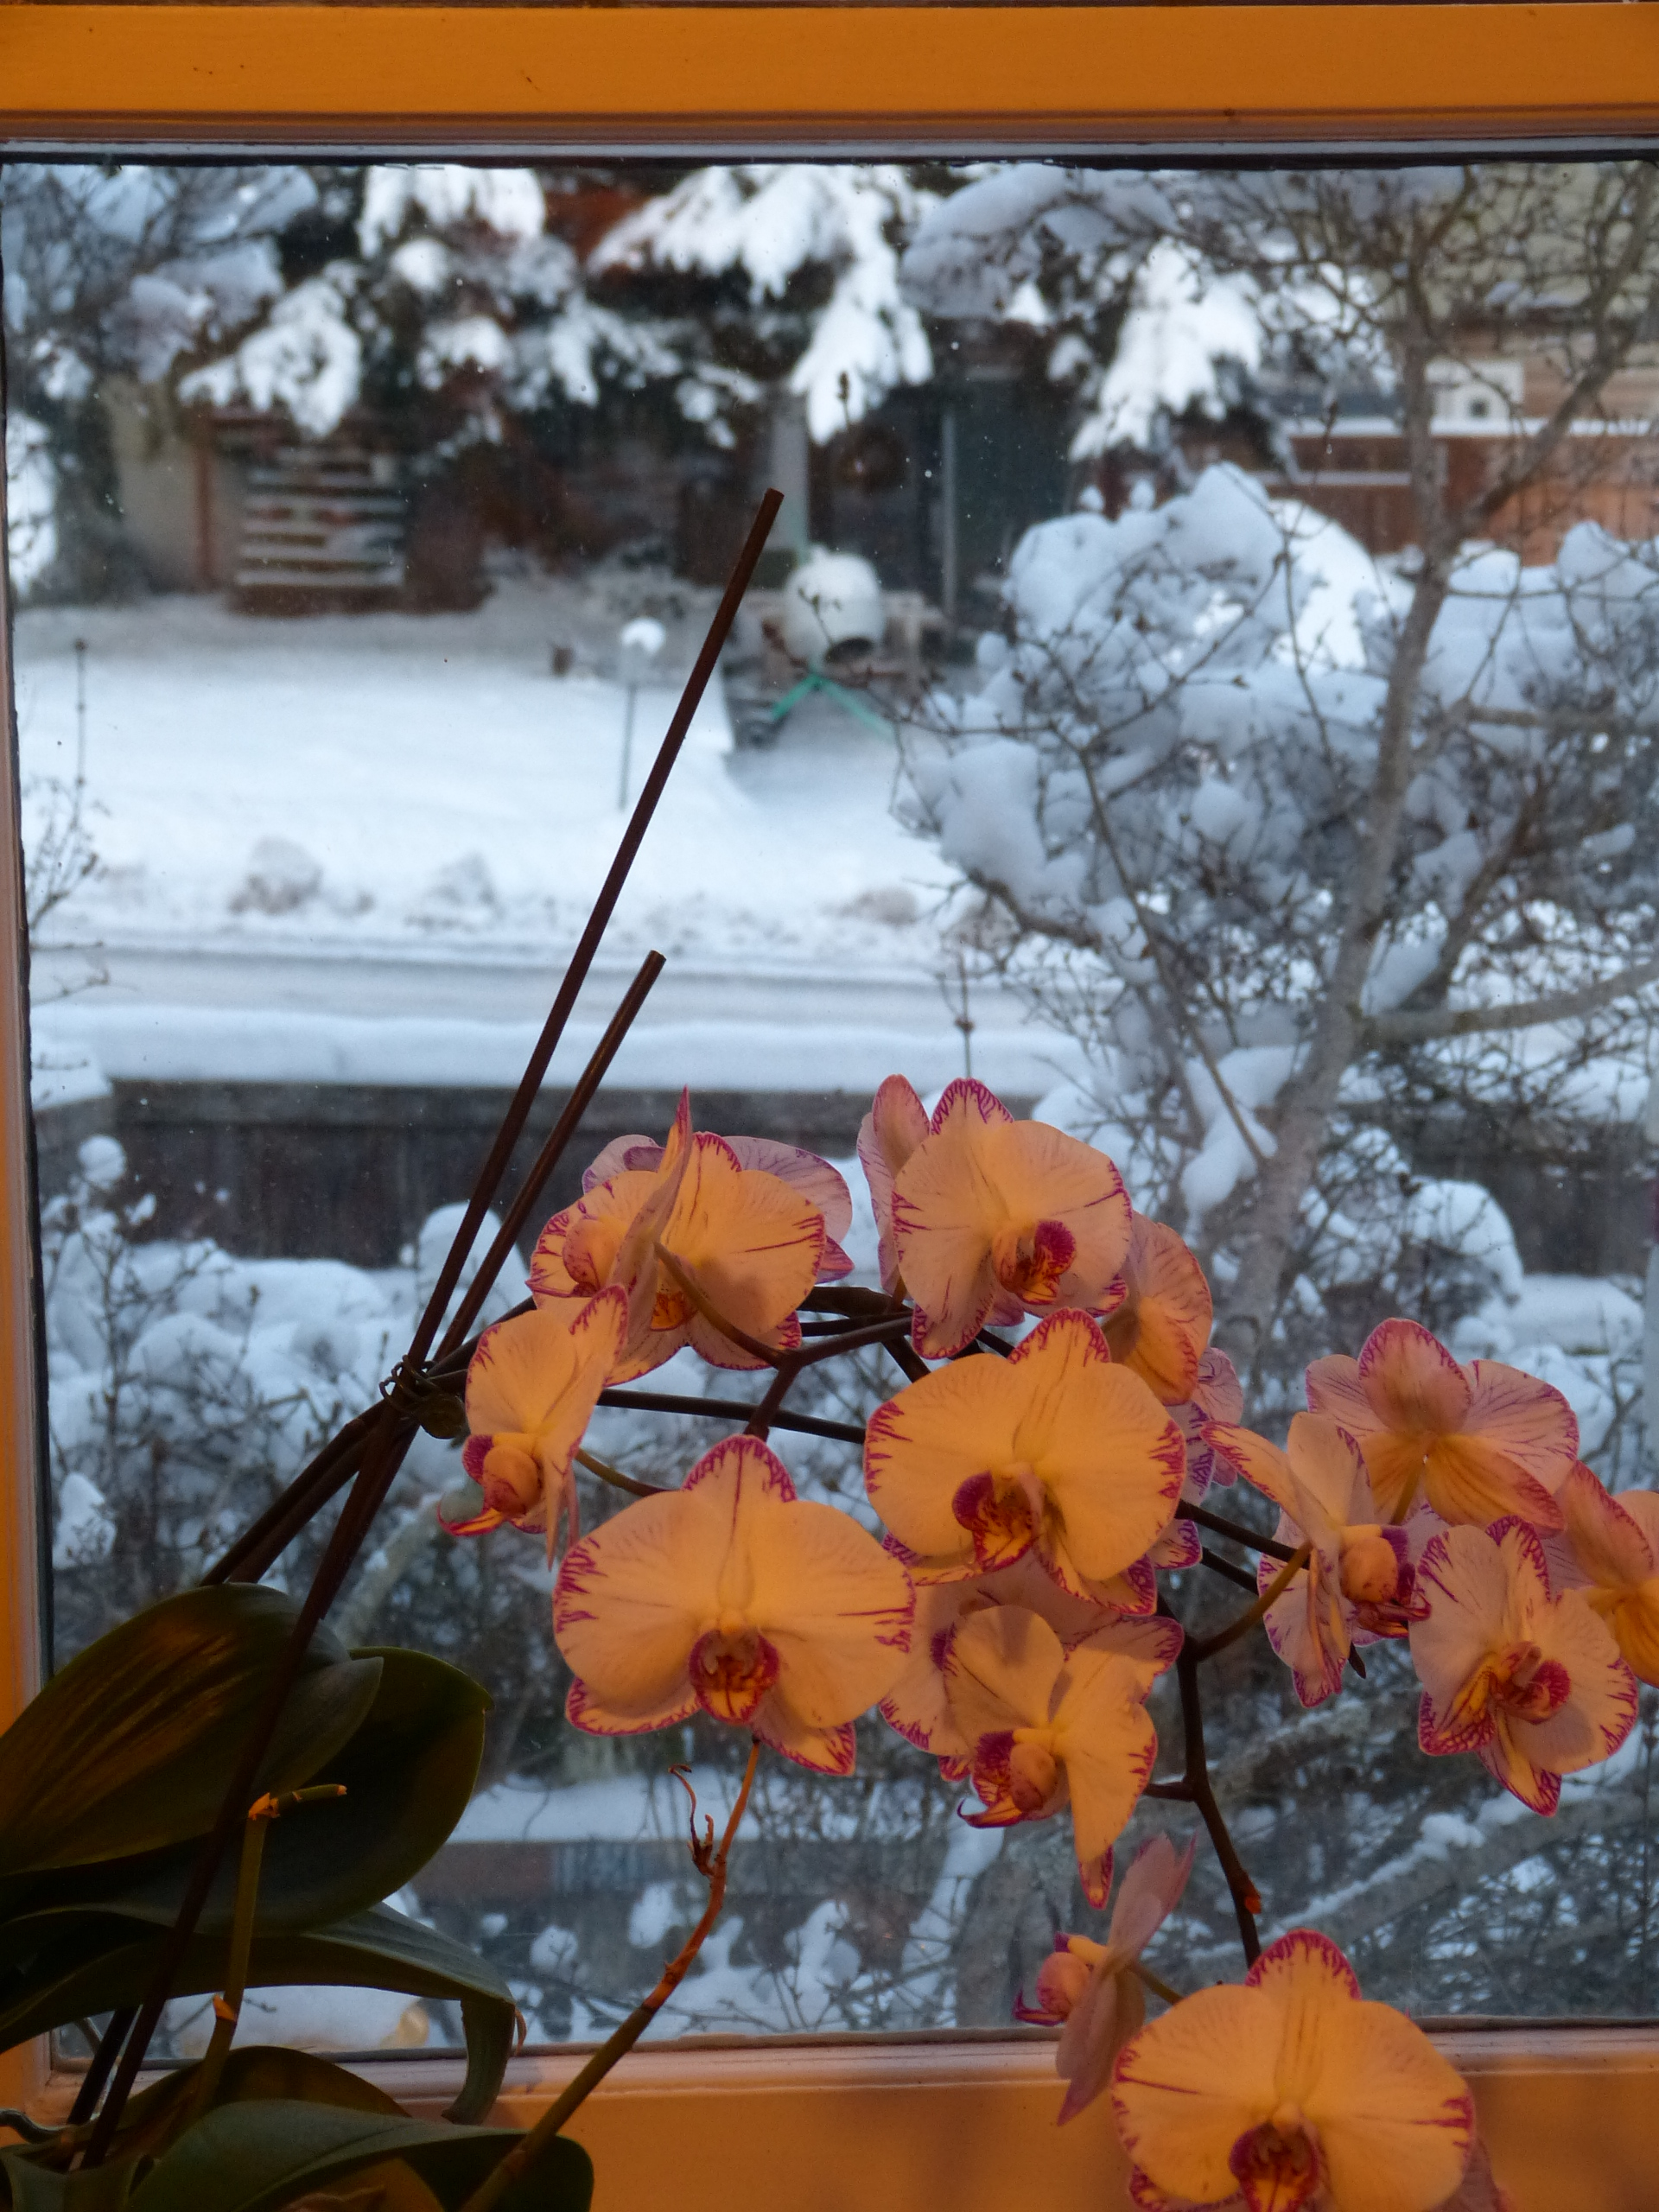 white orchids with pink throats in front of a snowy window